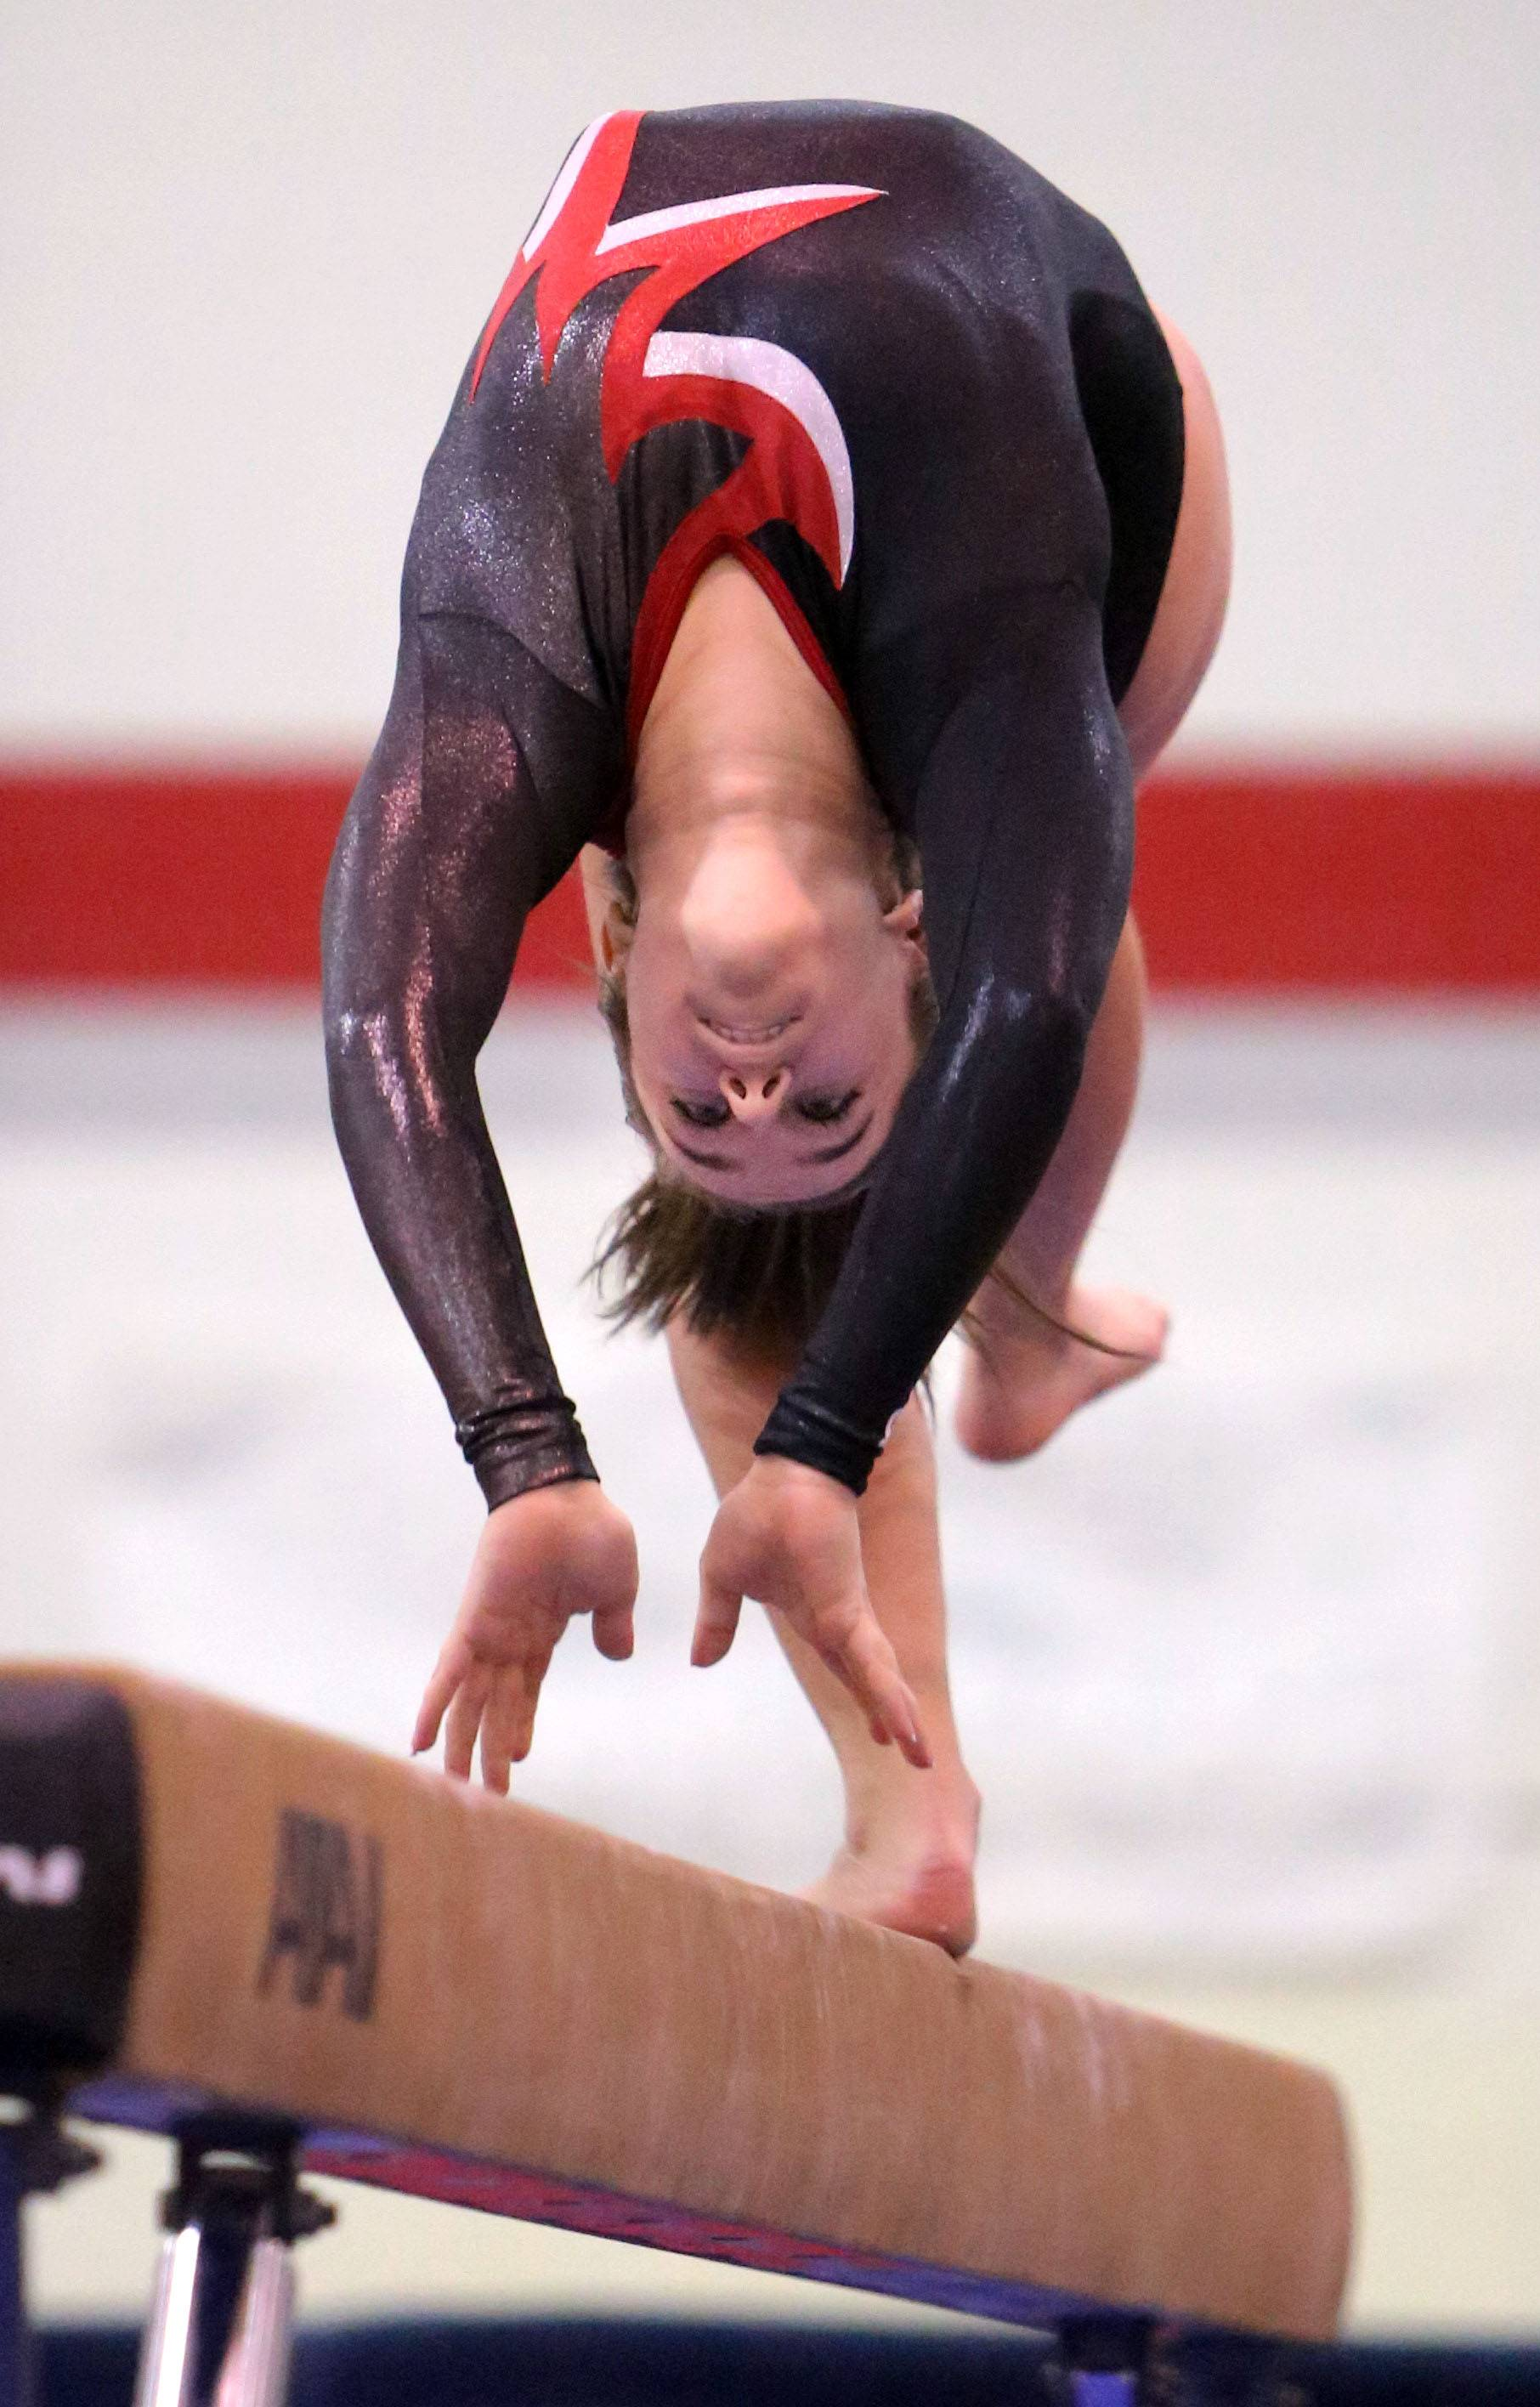 Mundelein's Nicole Ornoff competes on the beam during girls regional gymnastics Monday in Mundelein.